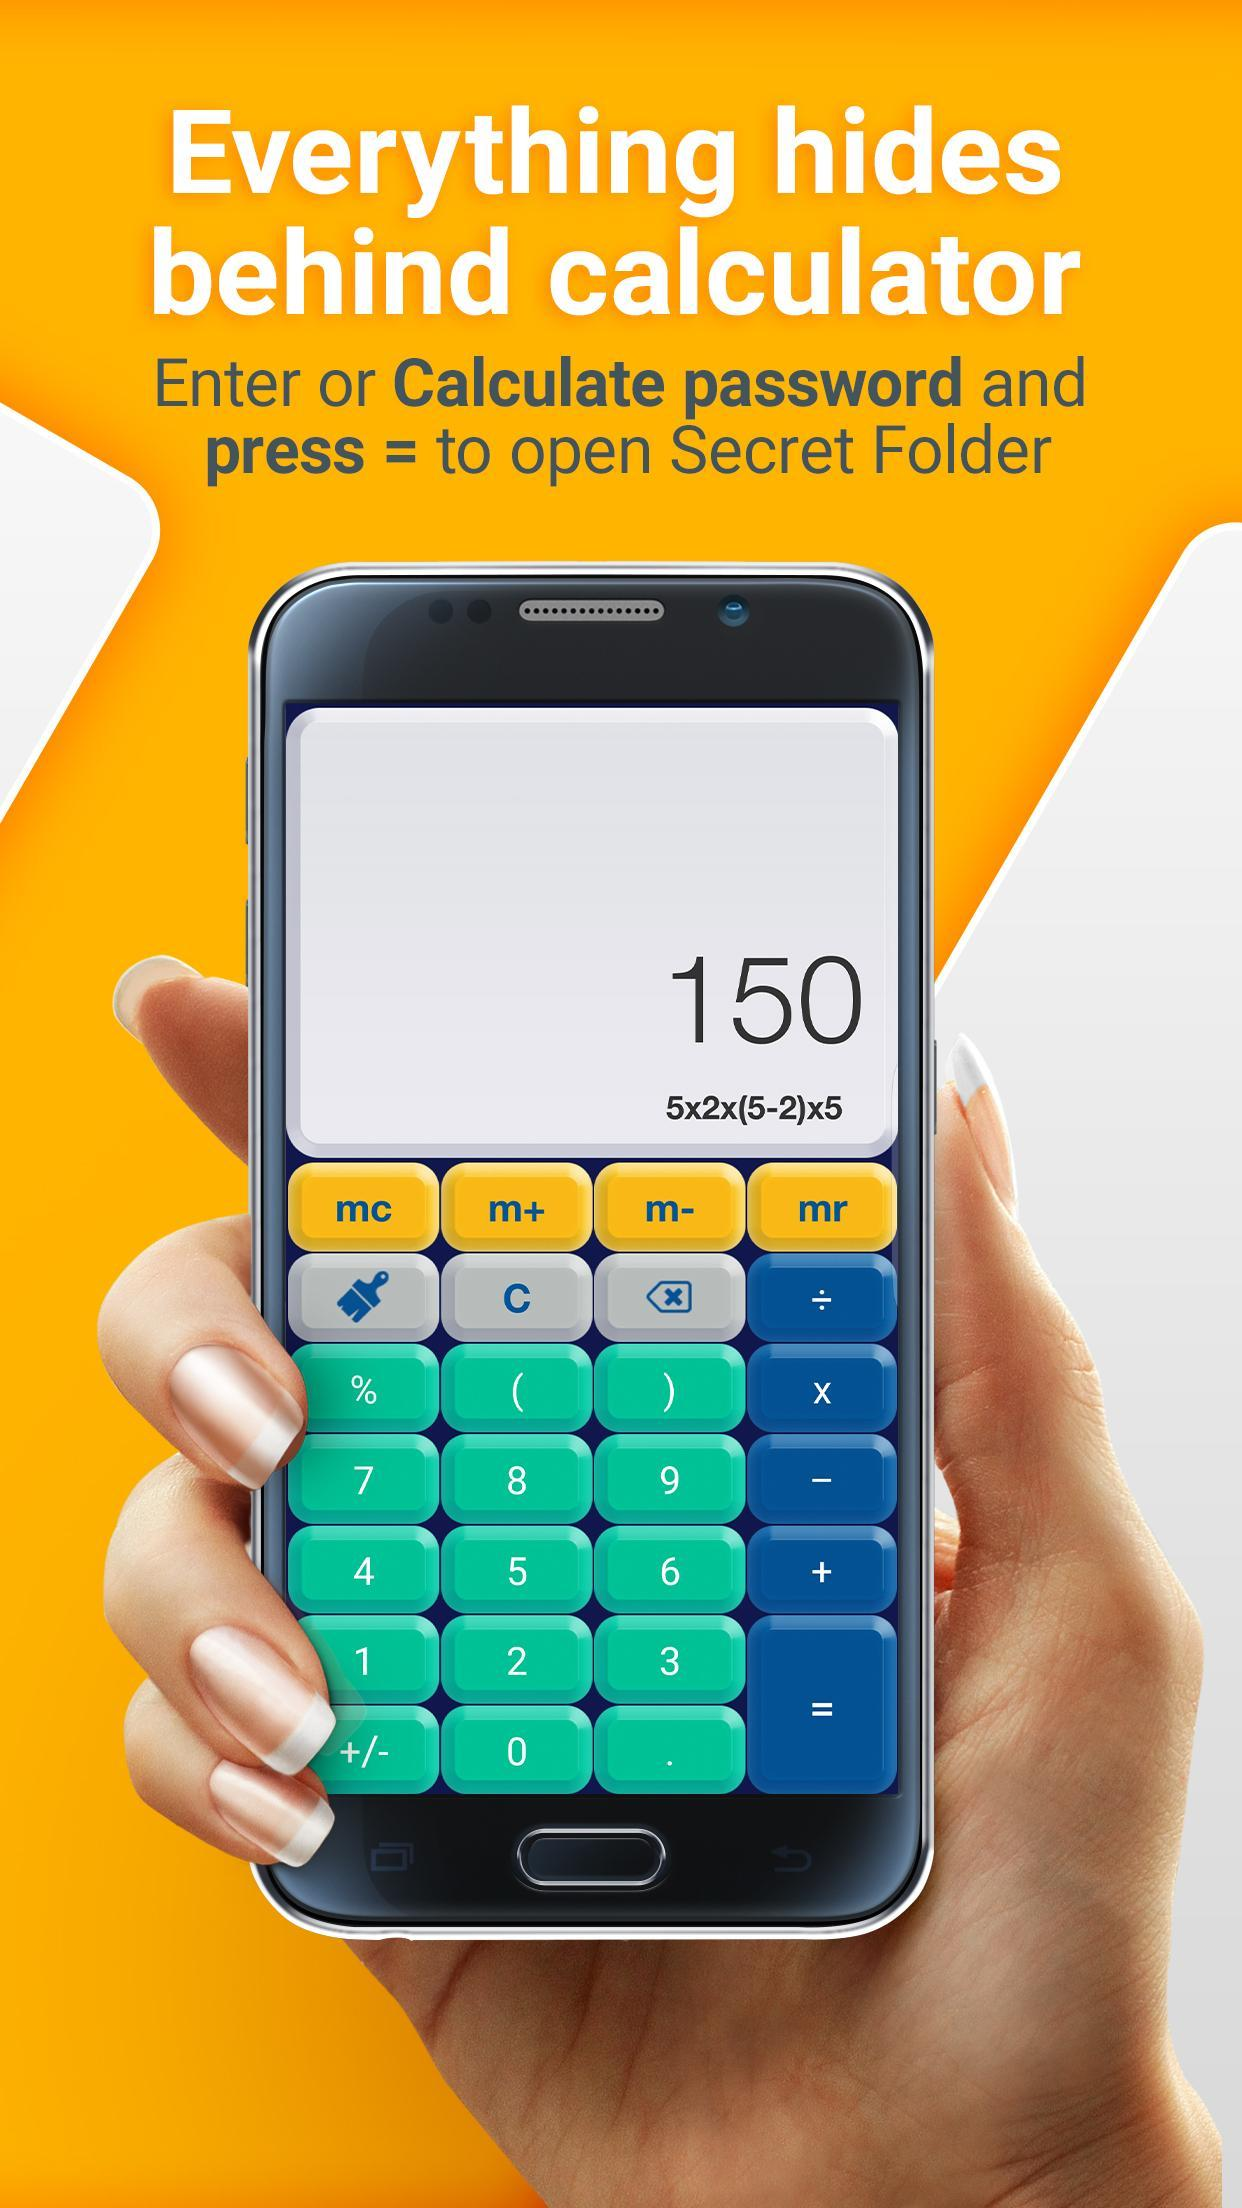 File Locker- Secret Calculator for Android - APK Download